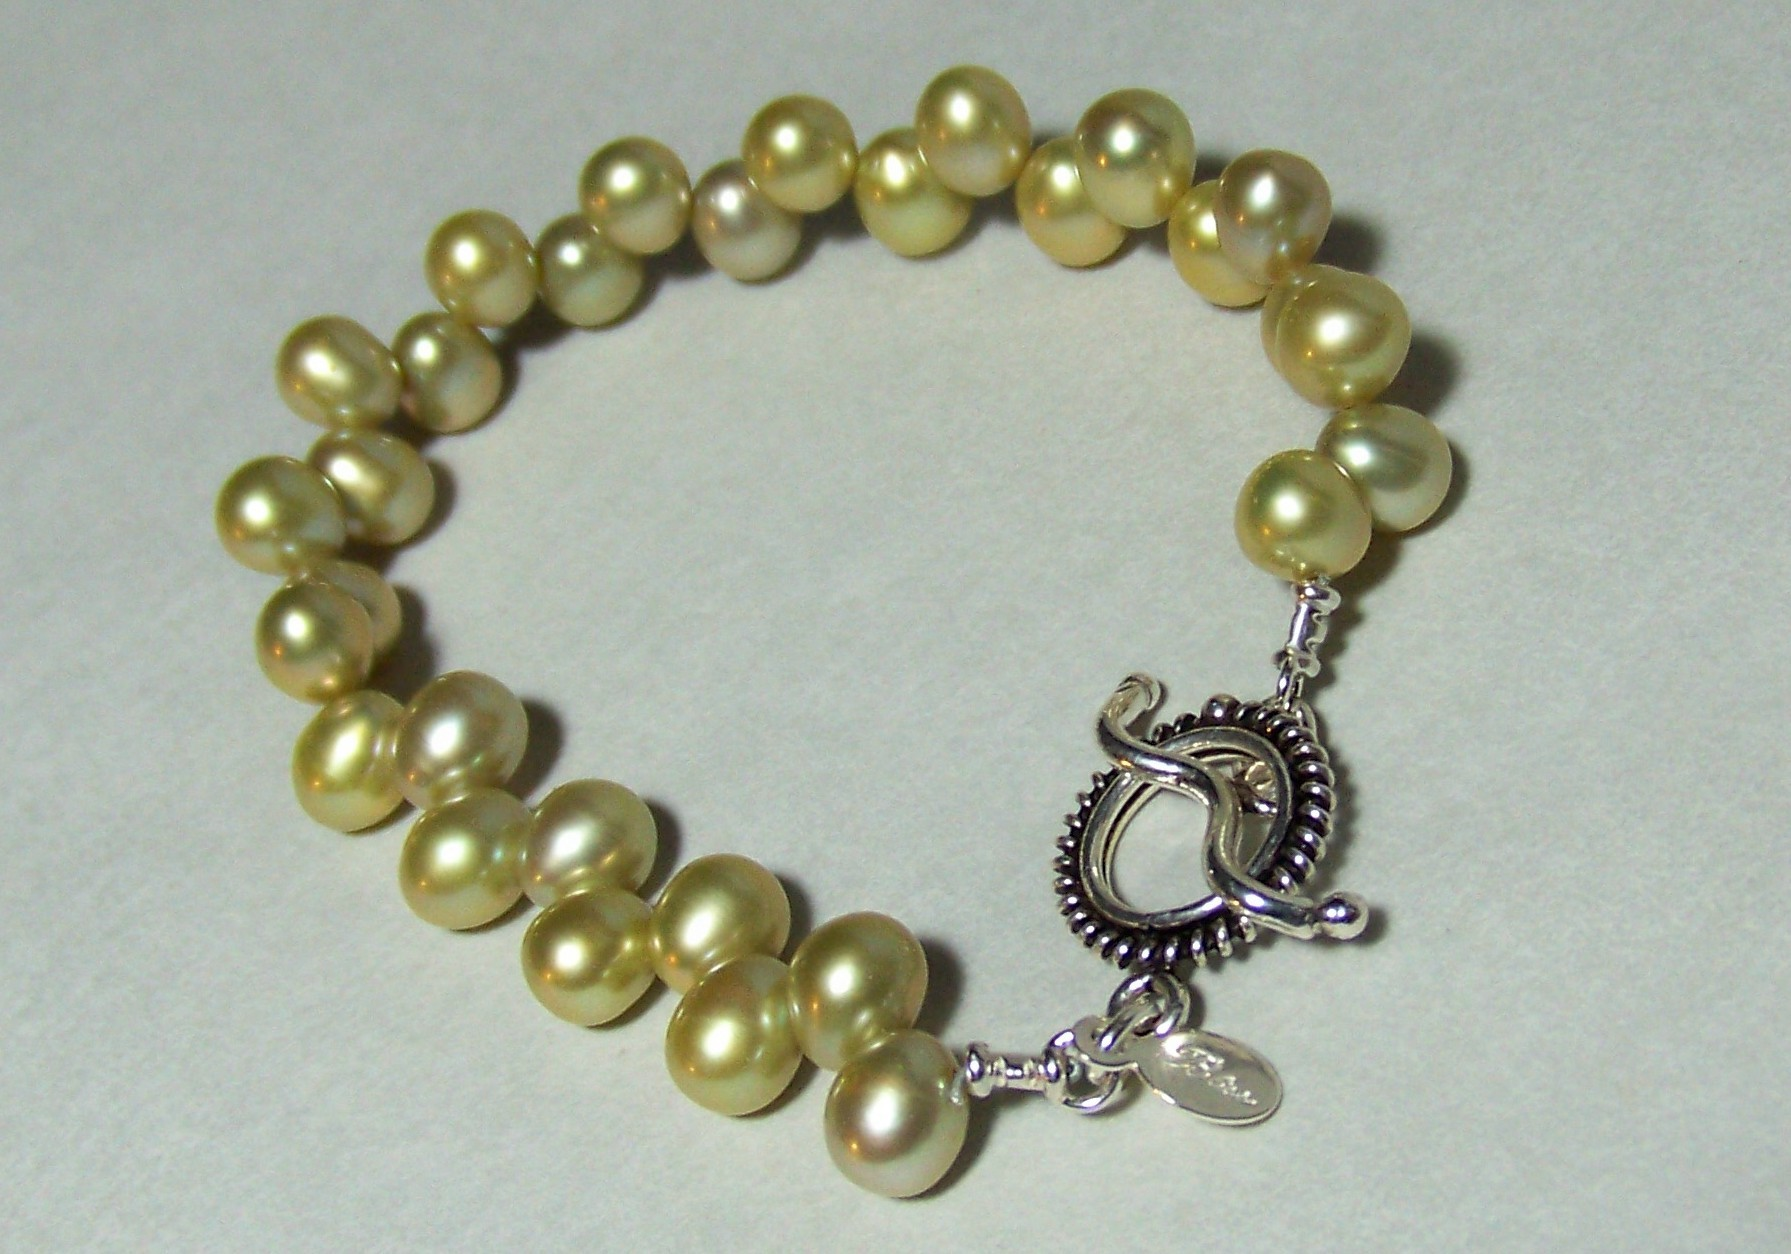 Jewelry, Bridesmaids, Bridesmaids Dresses, Fashion, green, Bracelets, Pearls, Bracelet, Sterling, Bliss designs